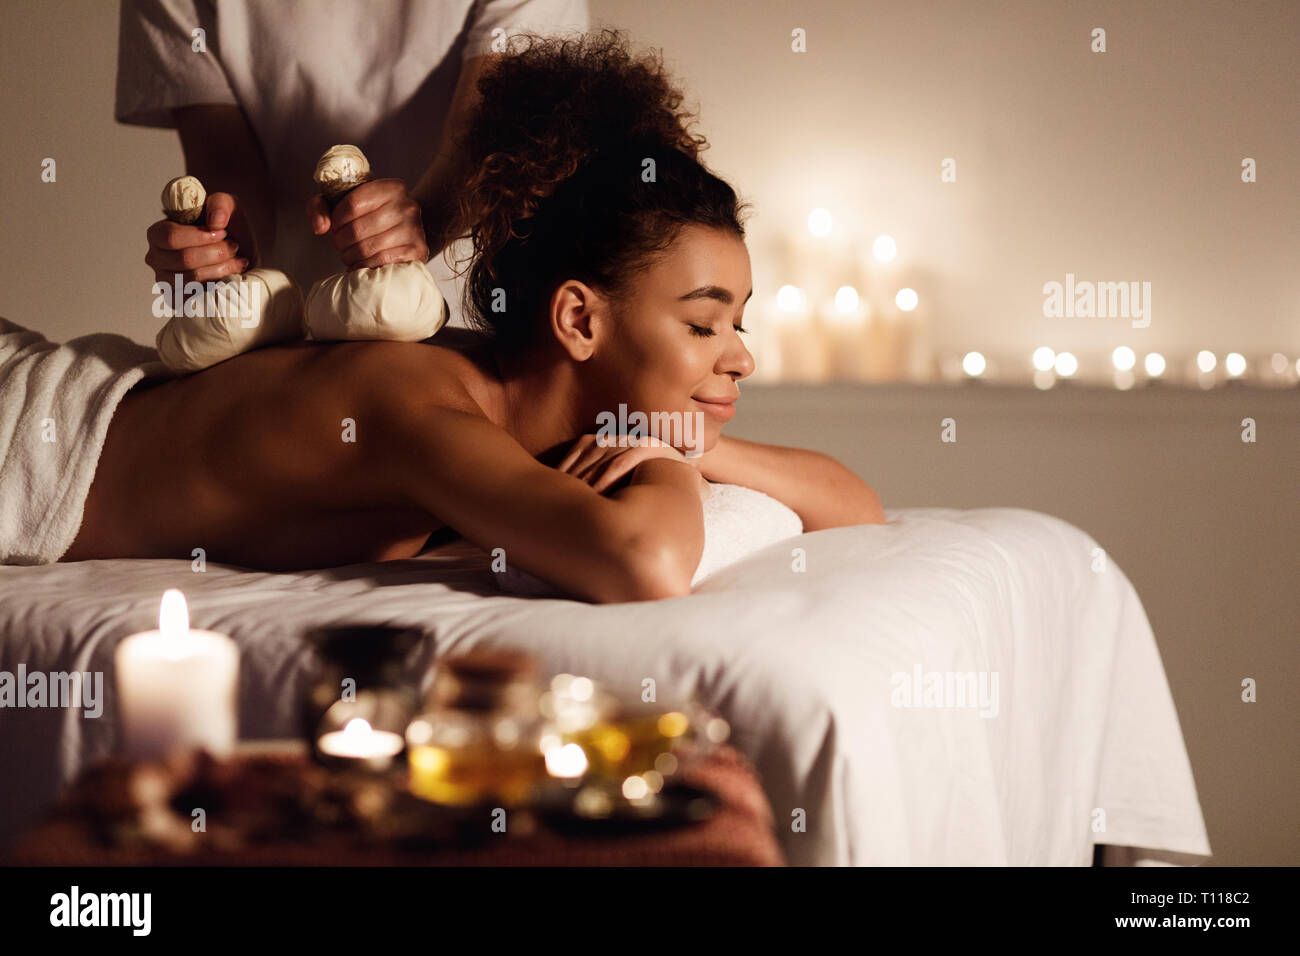 Woman enjoying back herbal massage and aroma therapy - Stock Image